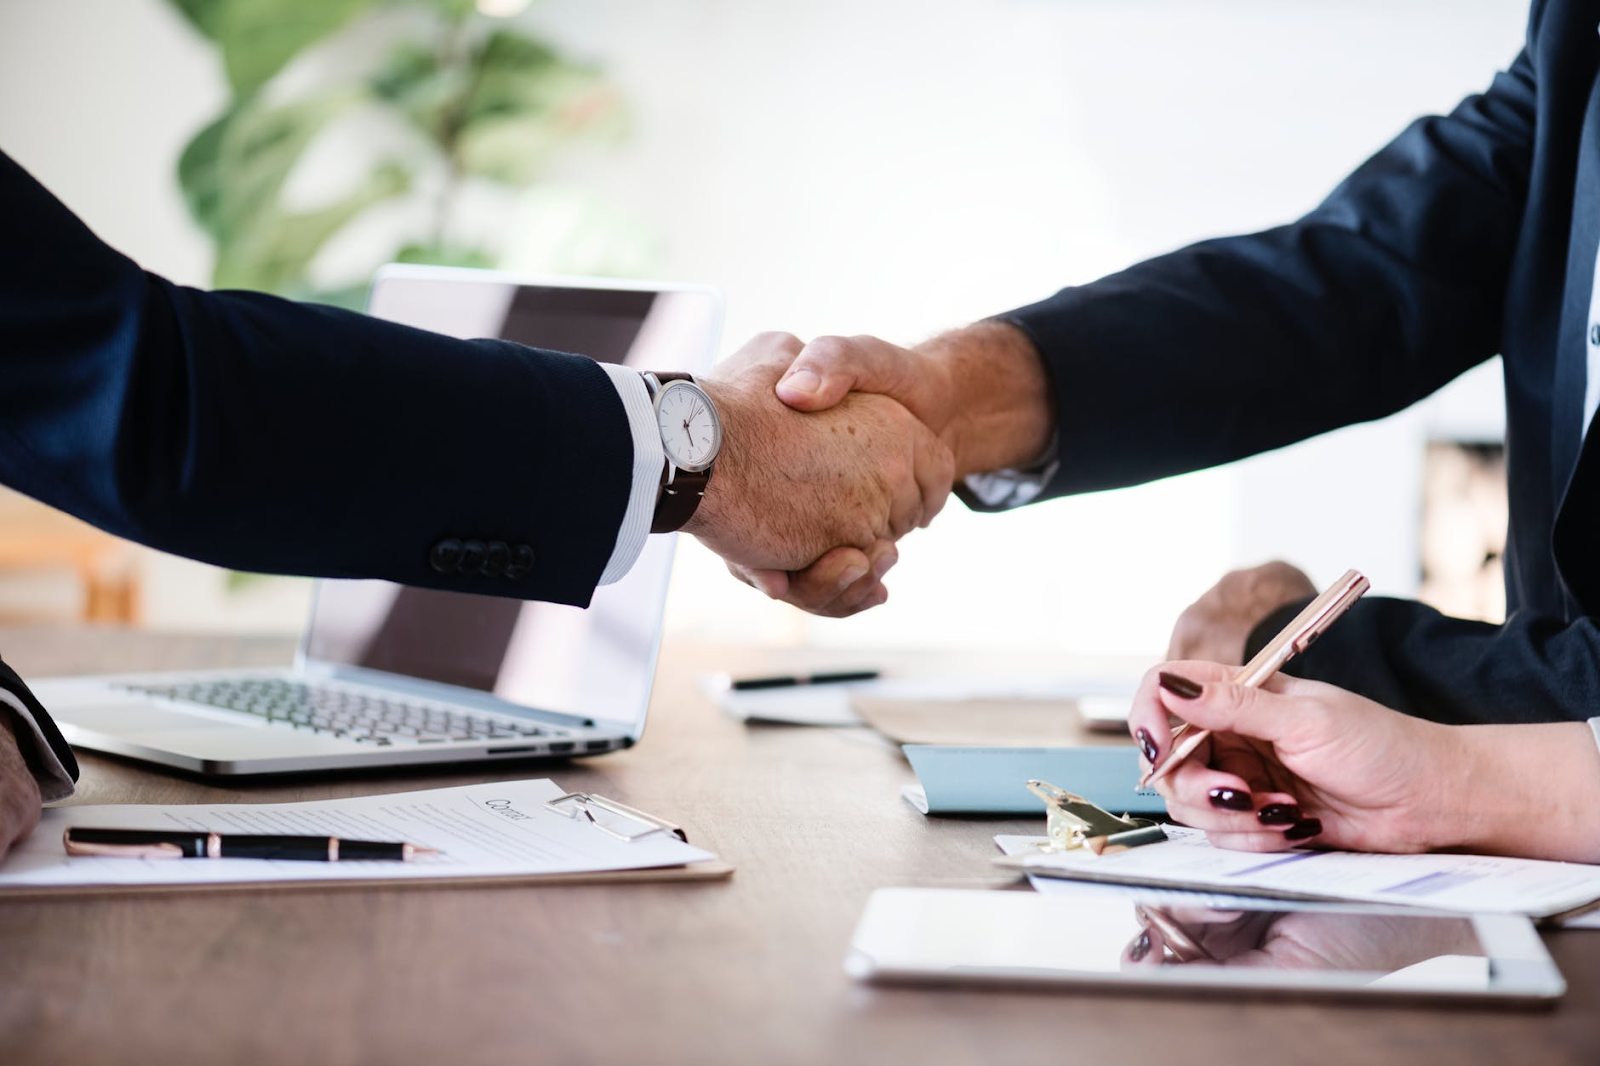 shaking hands on a deal for your startup idea